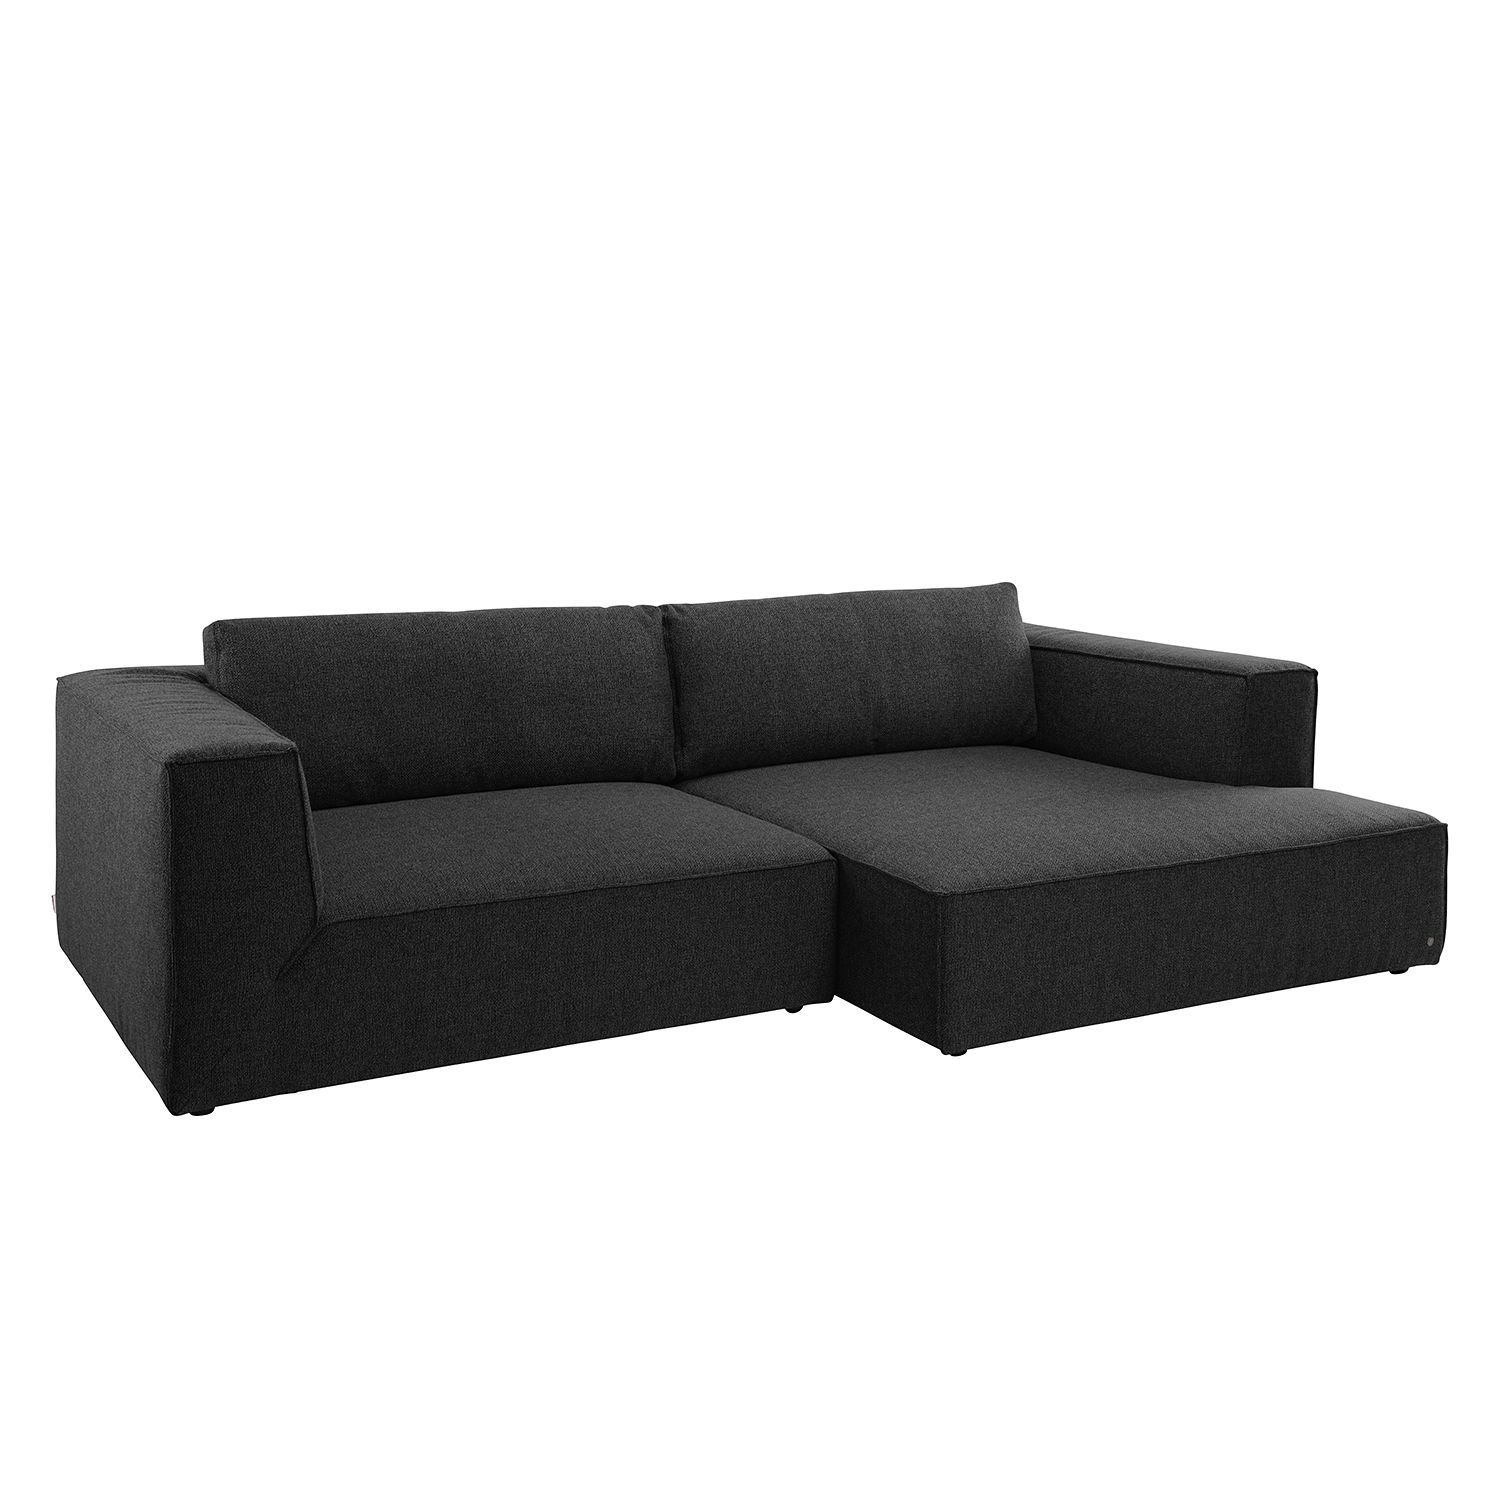 Ecksofa Big Cube Style Webstoff - Longchair davorstehend rechts - Stoff TBO9 anthrazite, Tom Tailor